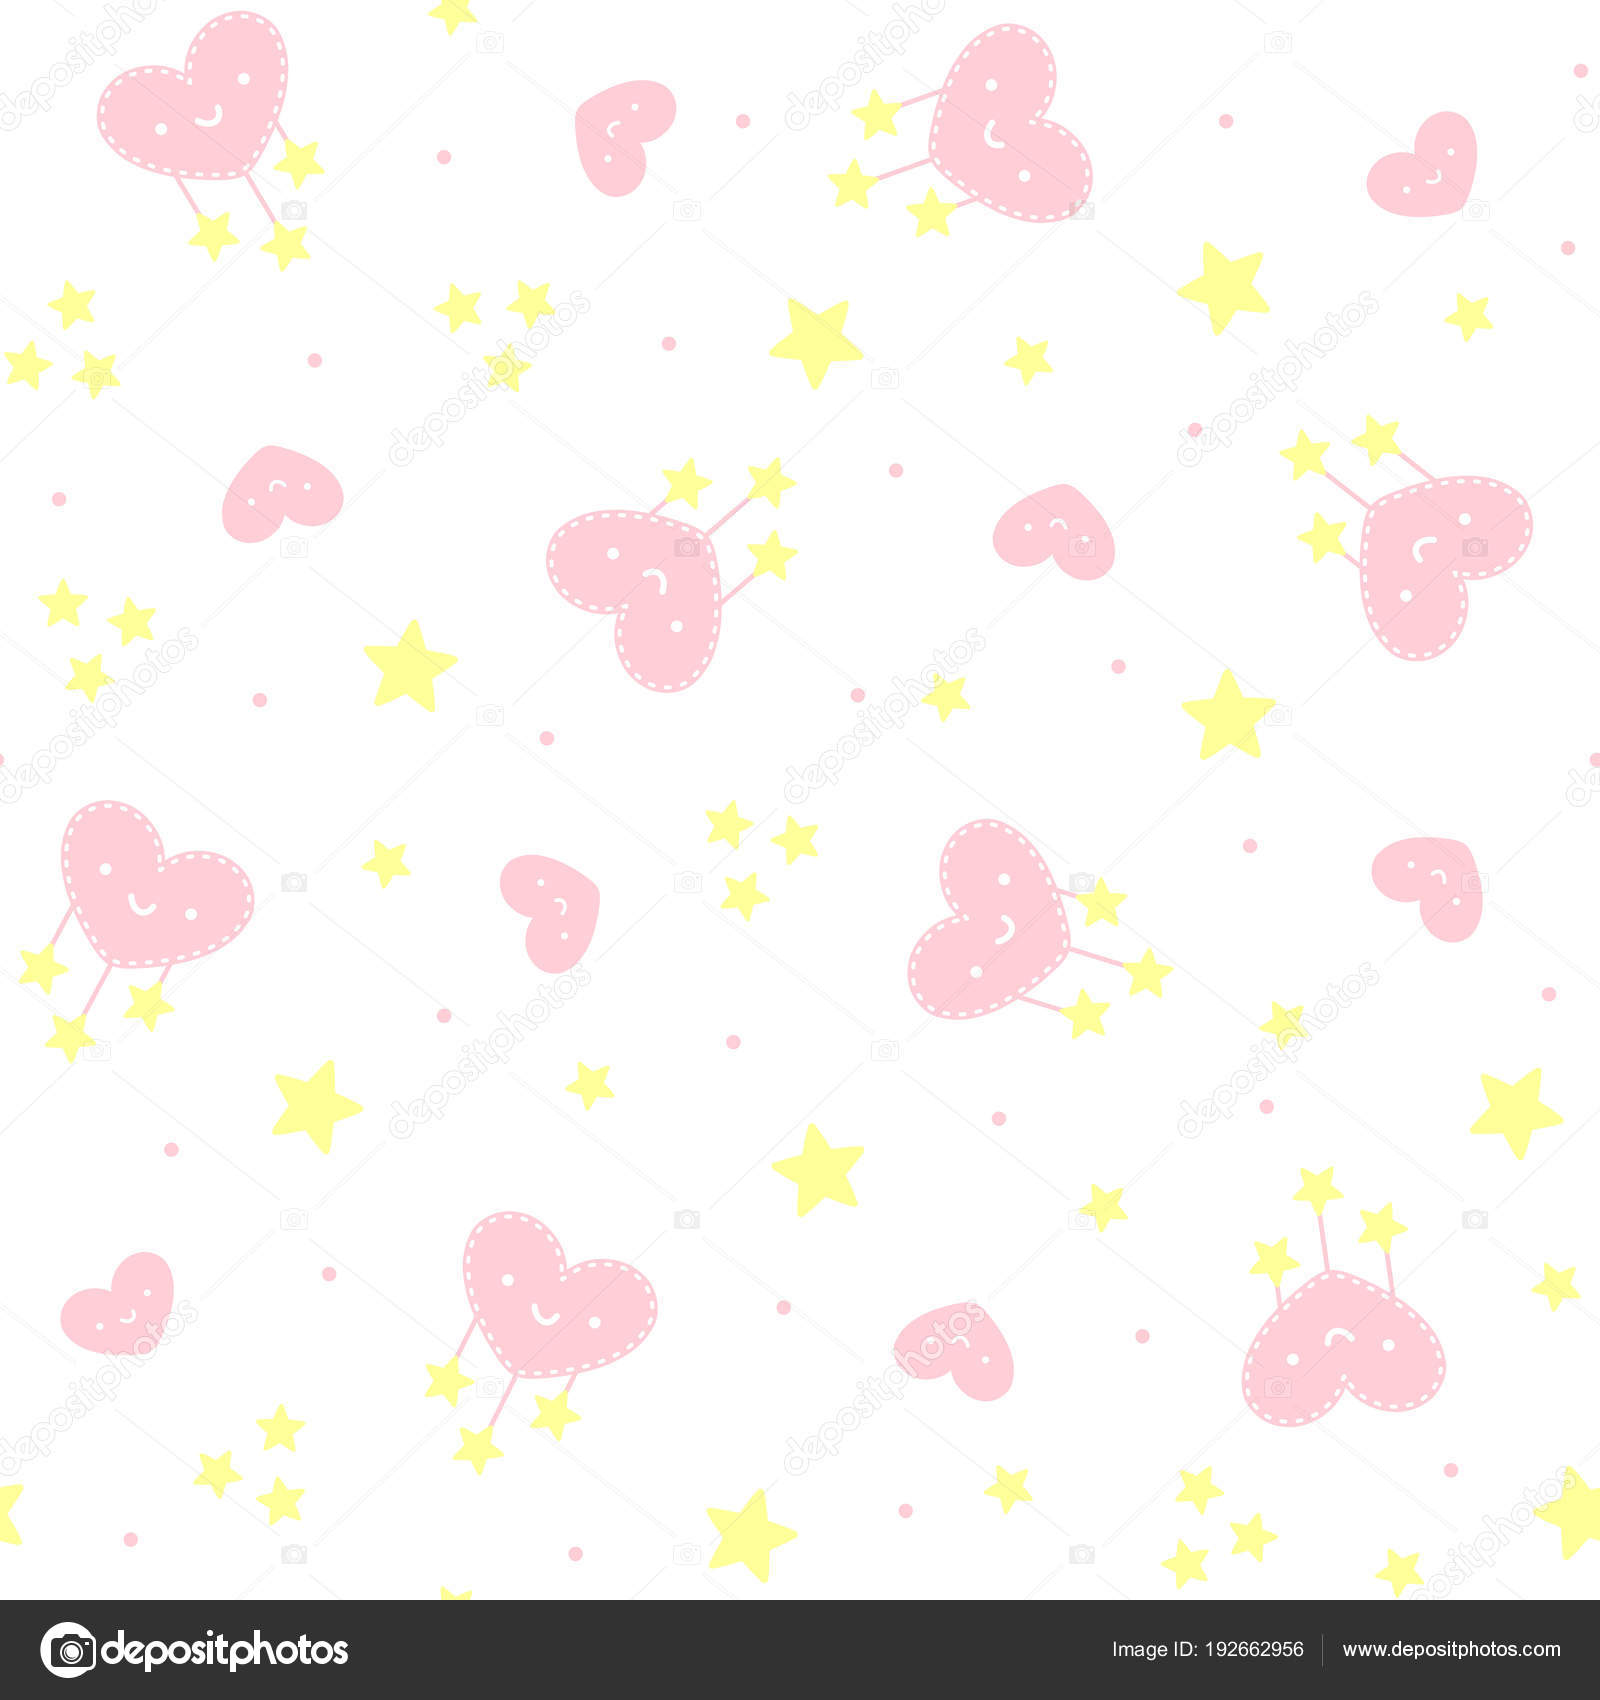 Cute Seamless Pattern Smiling Hearts Stars White Background Design